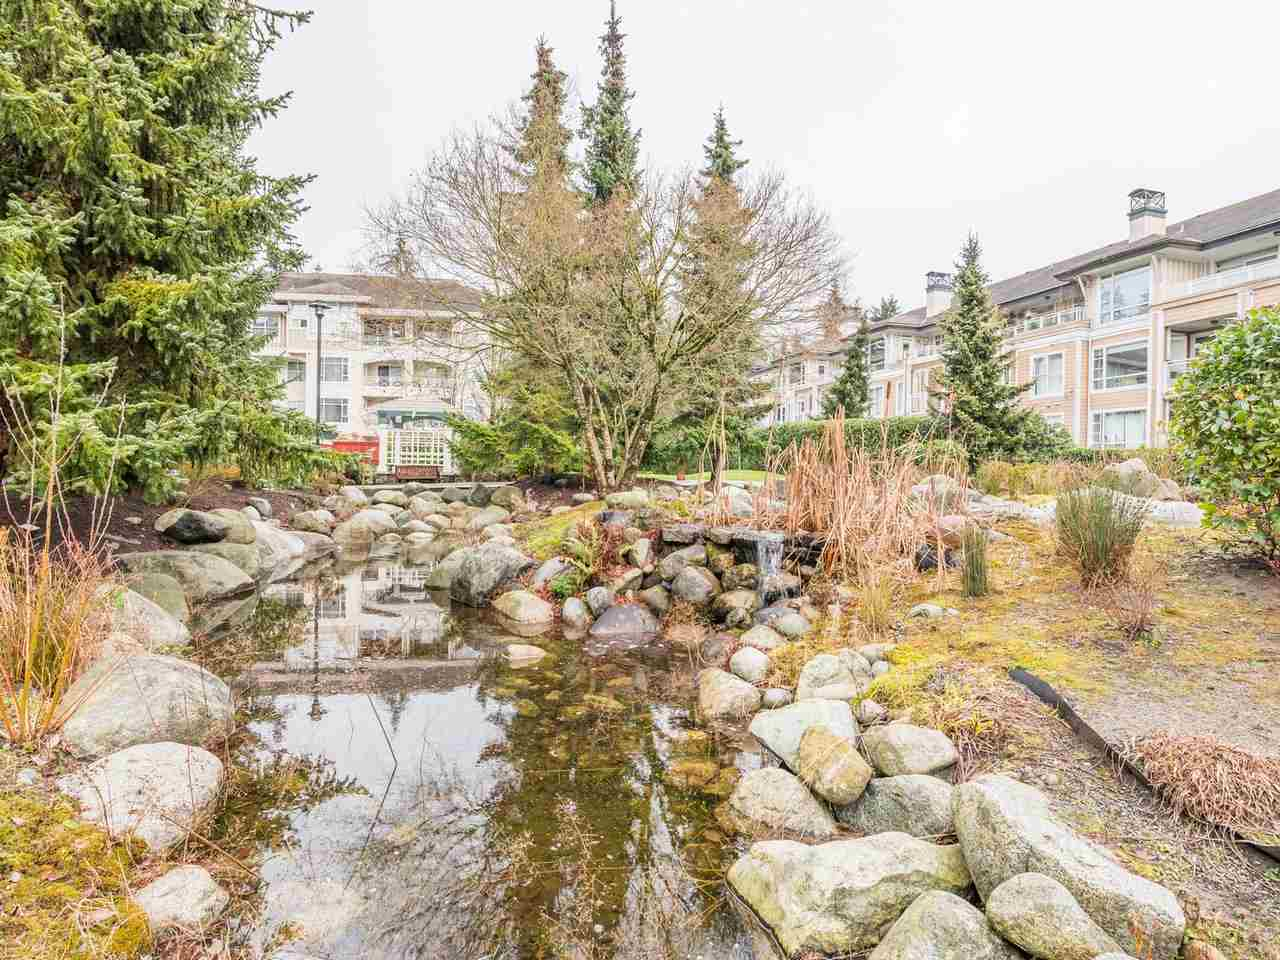 412 3629 DEERCREST DRIVE - Roche Point Apartment/Condo for sale, 1 Bedroom (R2525424) - #3